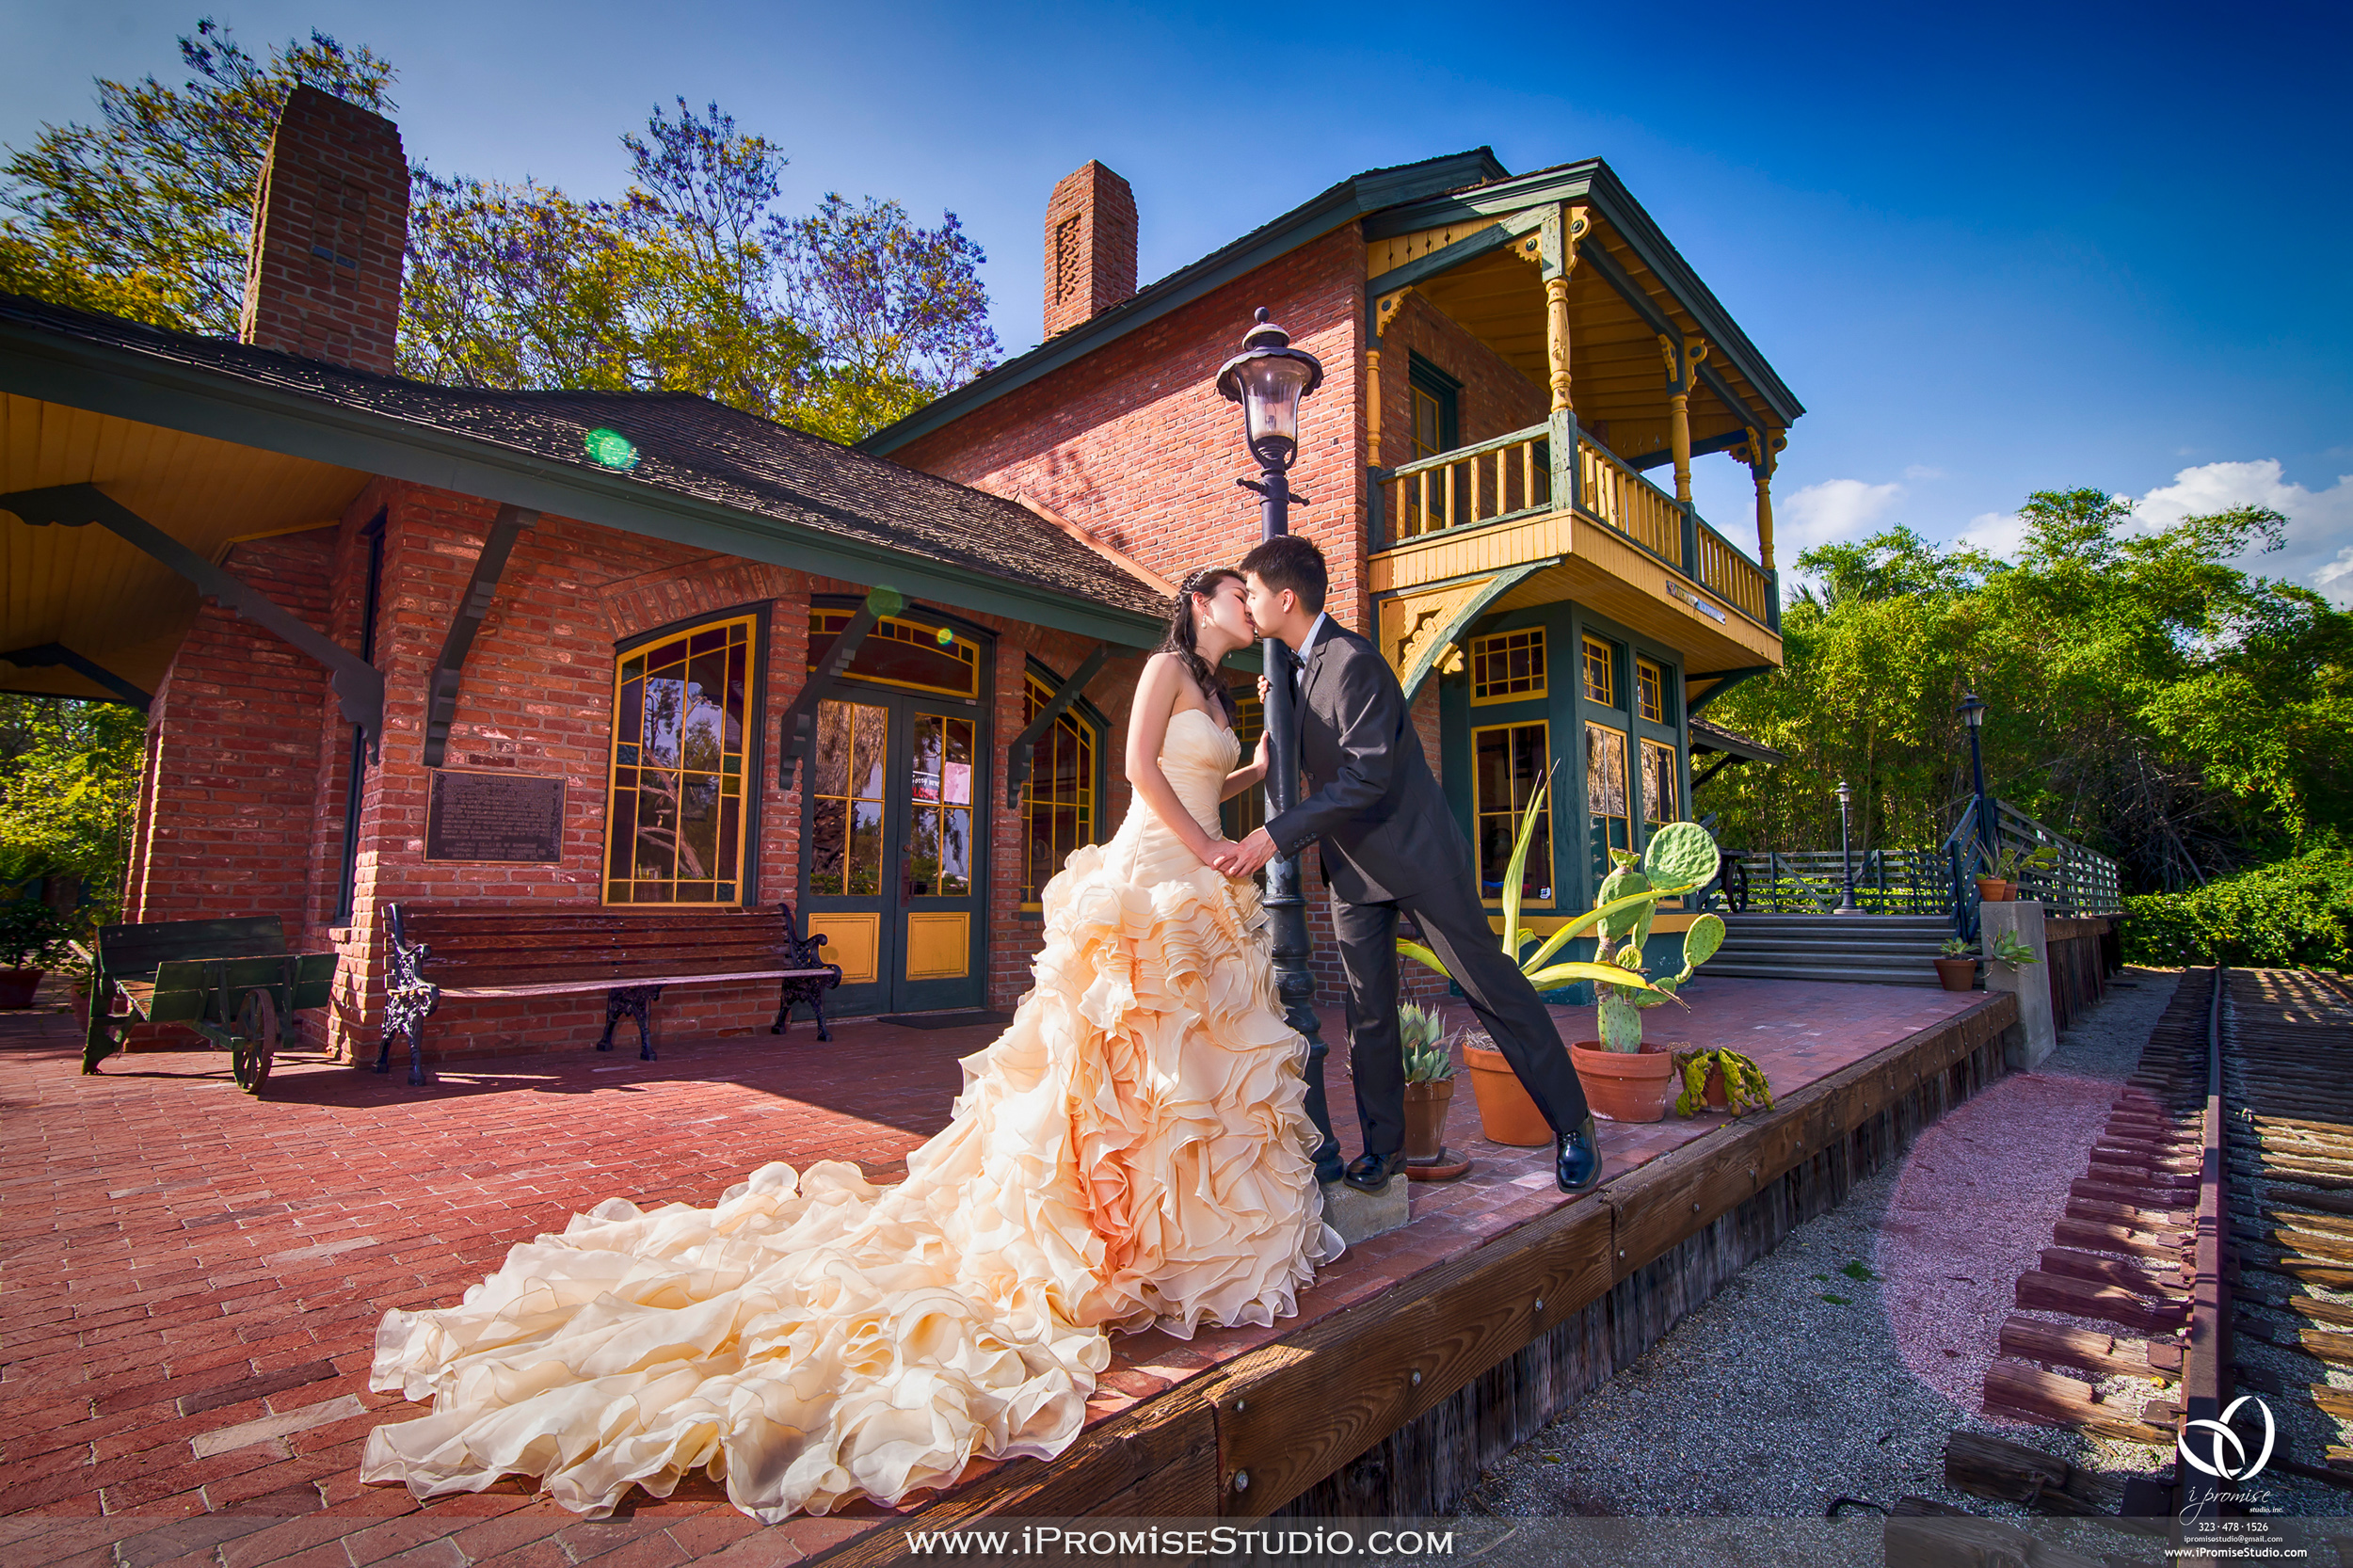 Arcadia Los Angeles County Arboretum and Botanic Garden Railway-engagement wedding 14.JPG